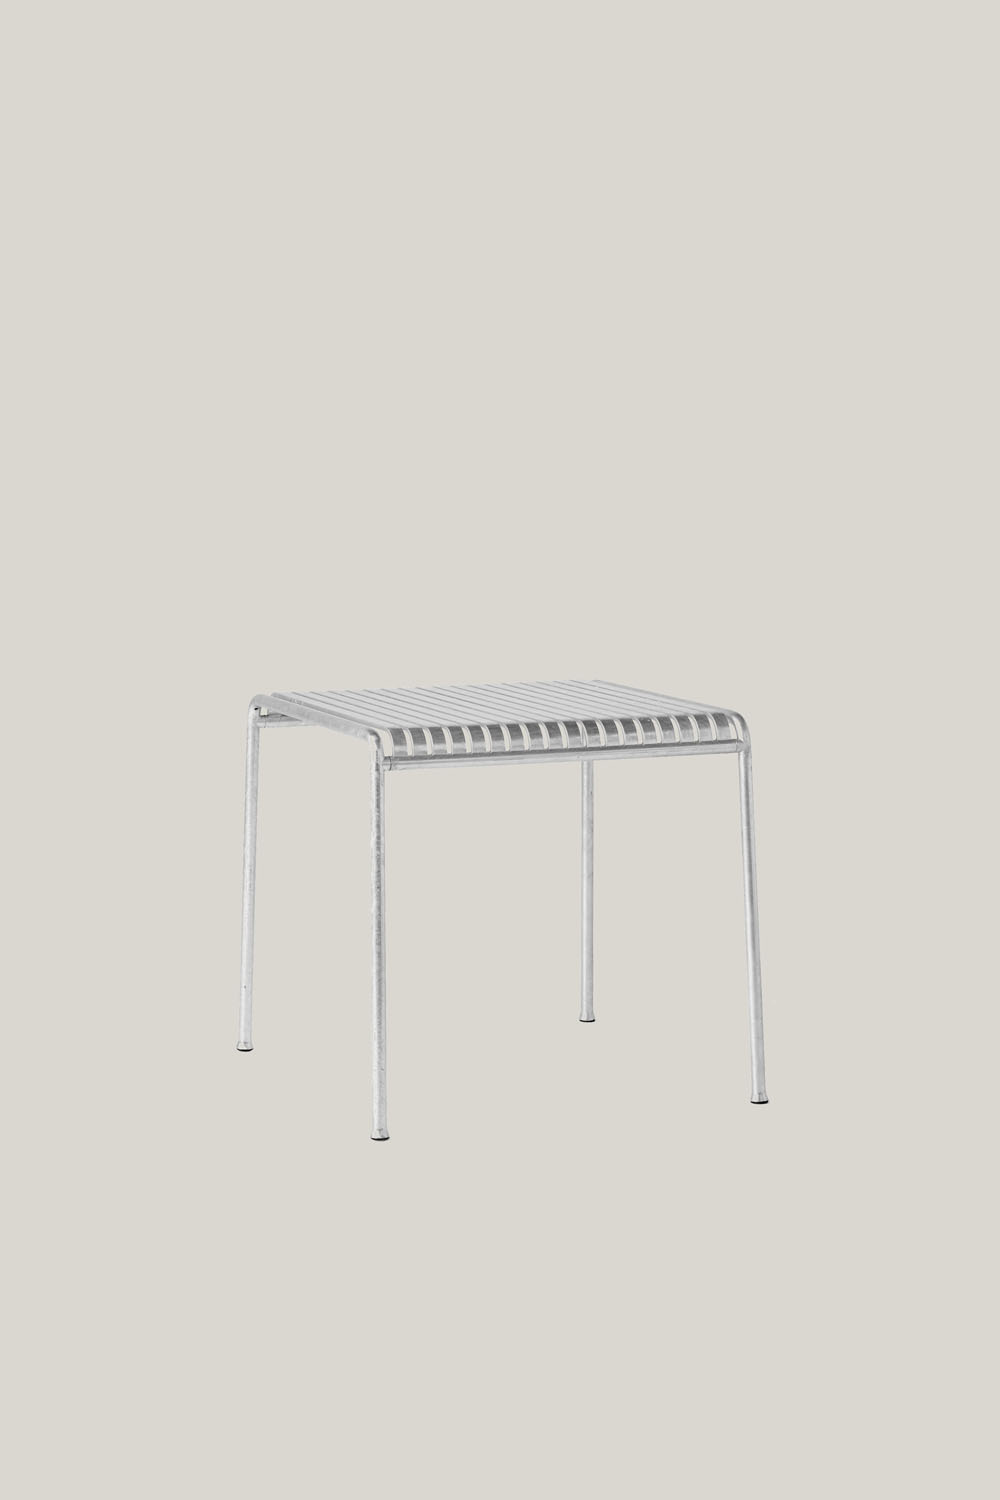 Palissade Table 80x80 cm Hot Galvanised